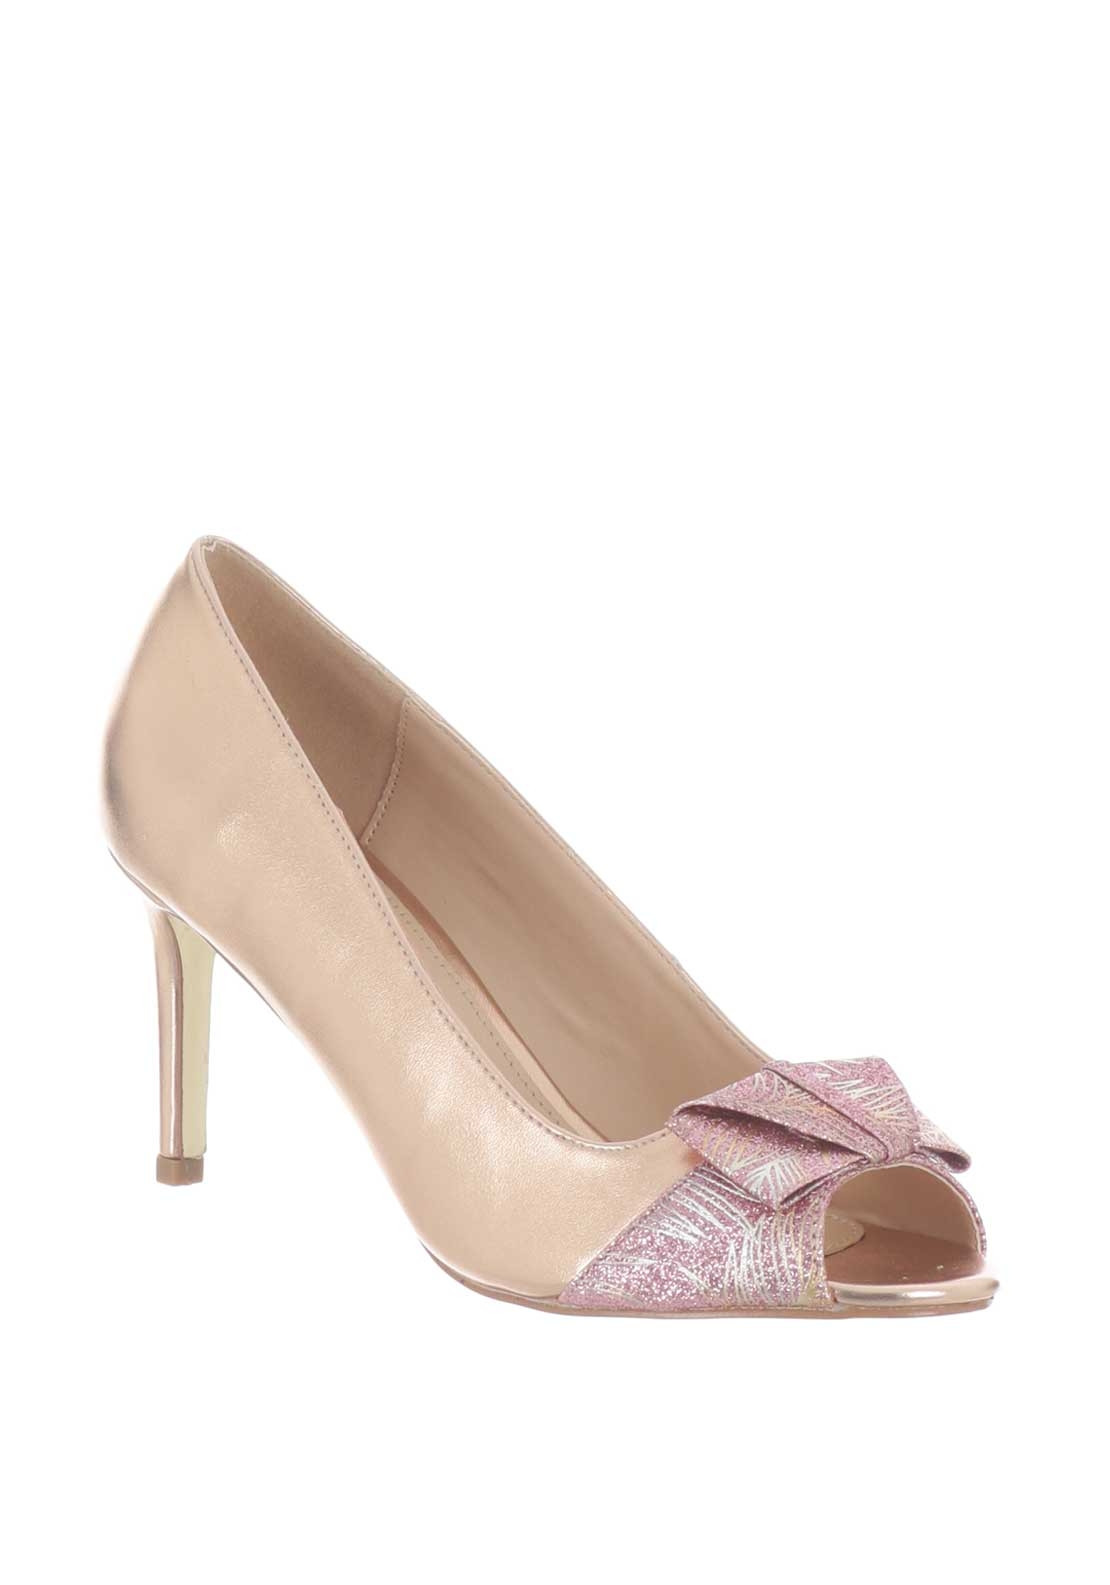 rose gold closed toe shoes cheap online